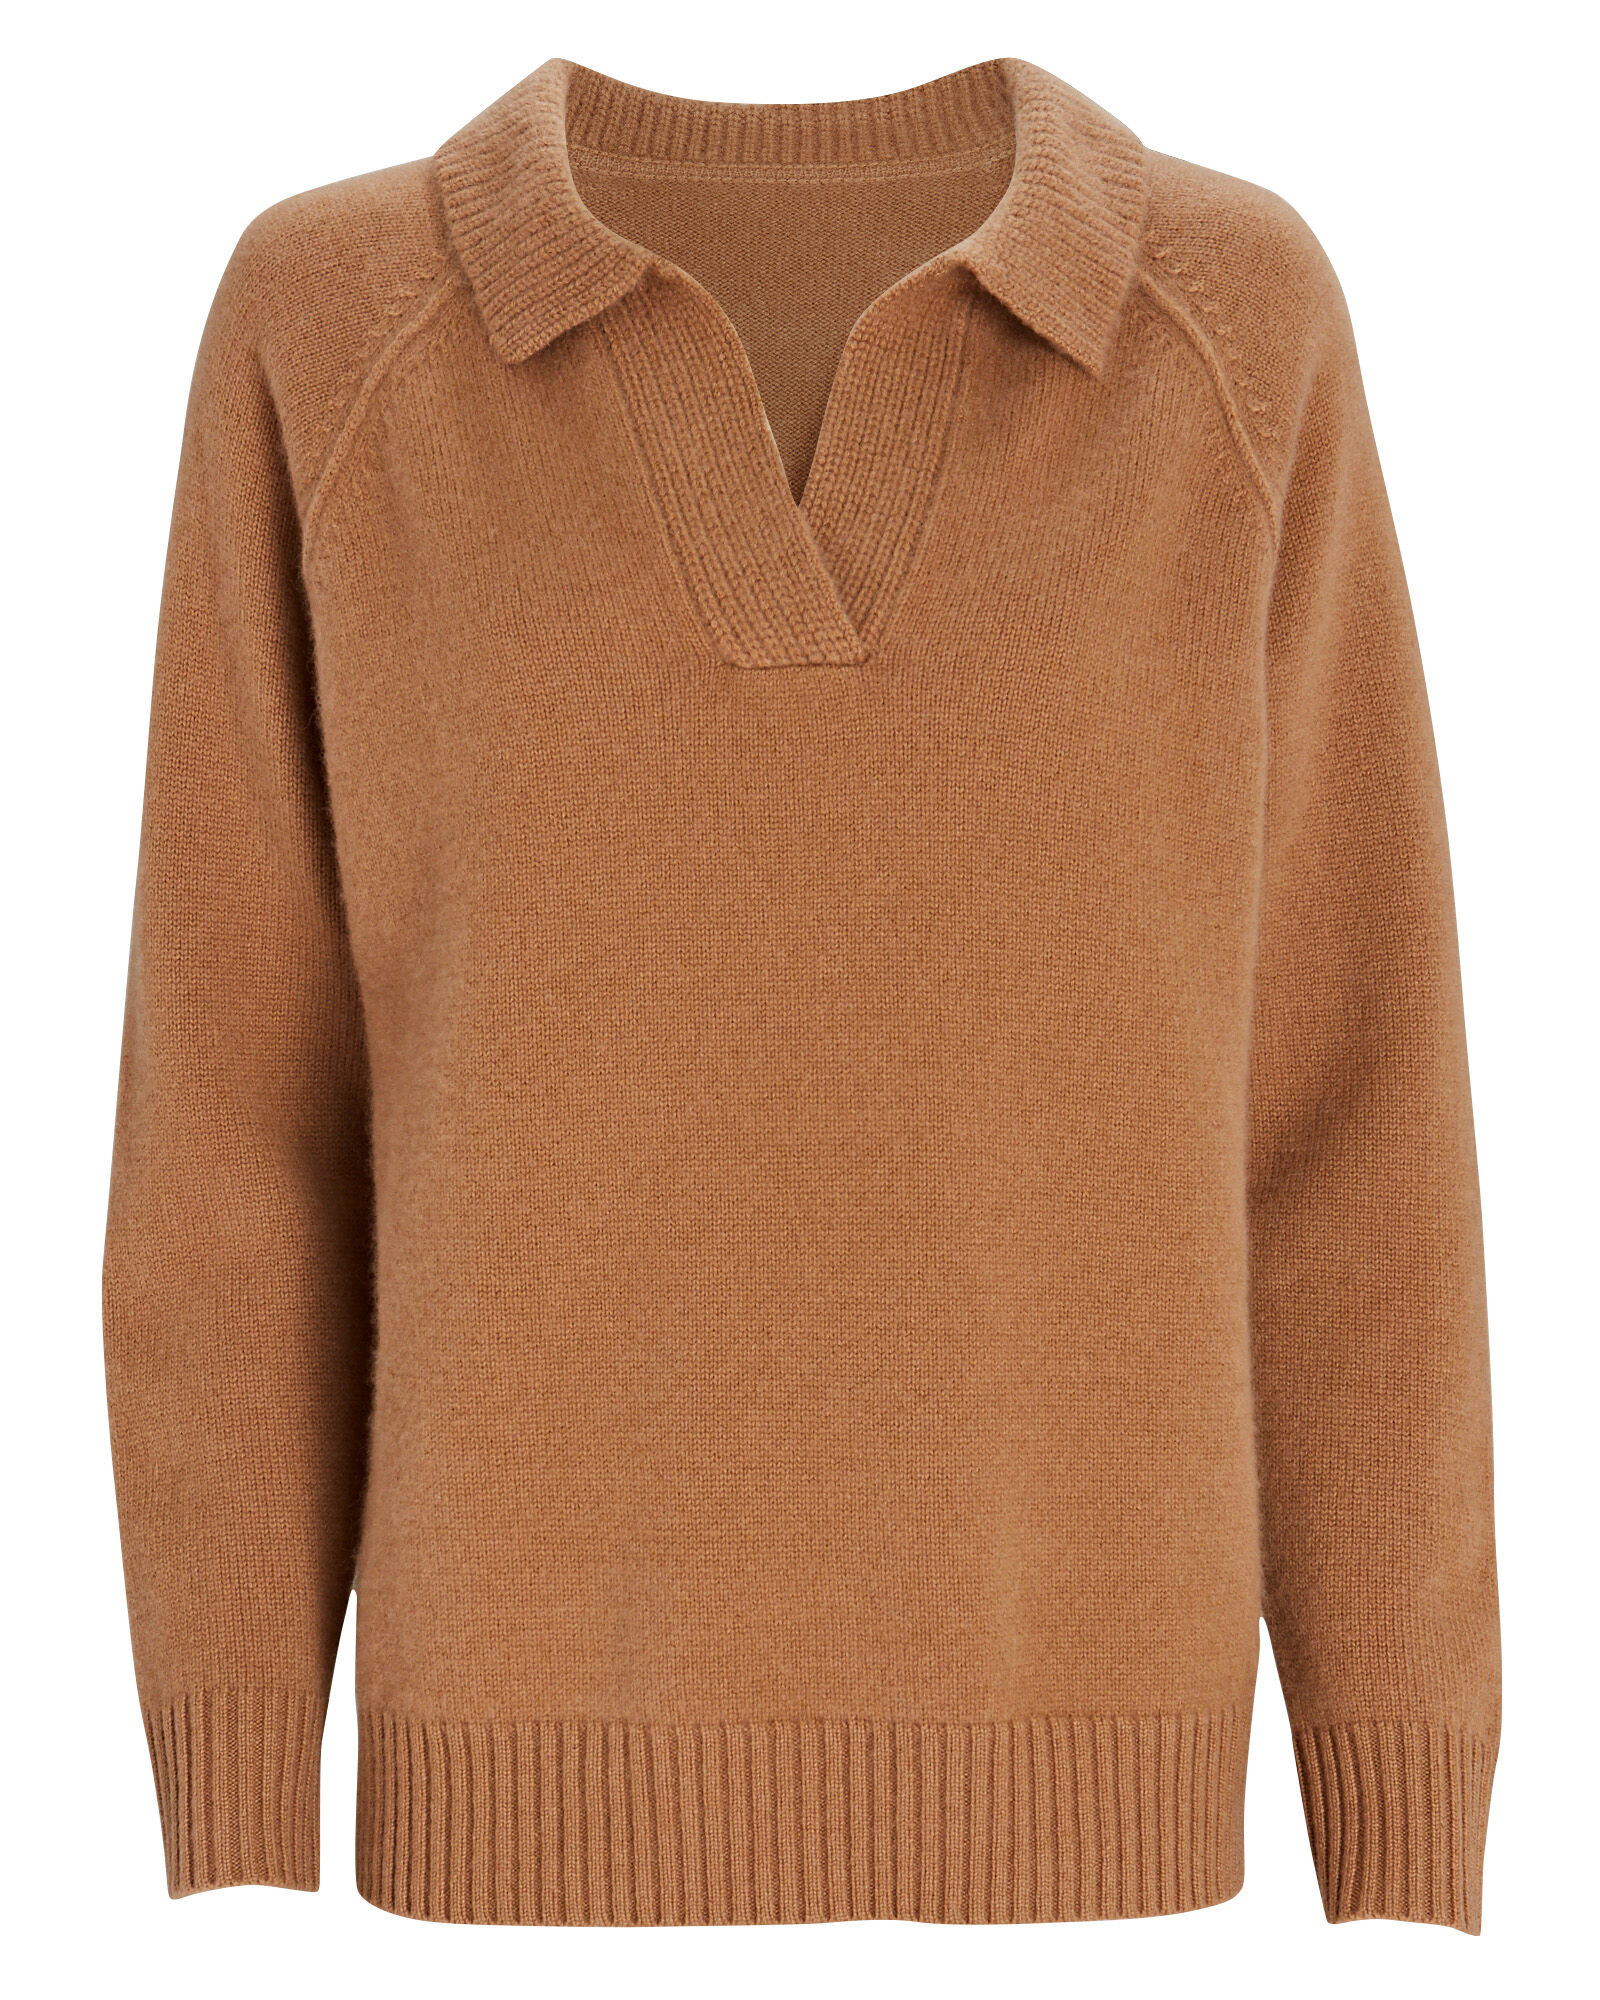 Jodie Polo Cashmere Sweater, BEIGE, hi-res